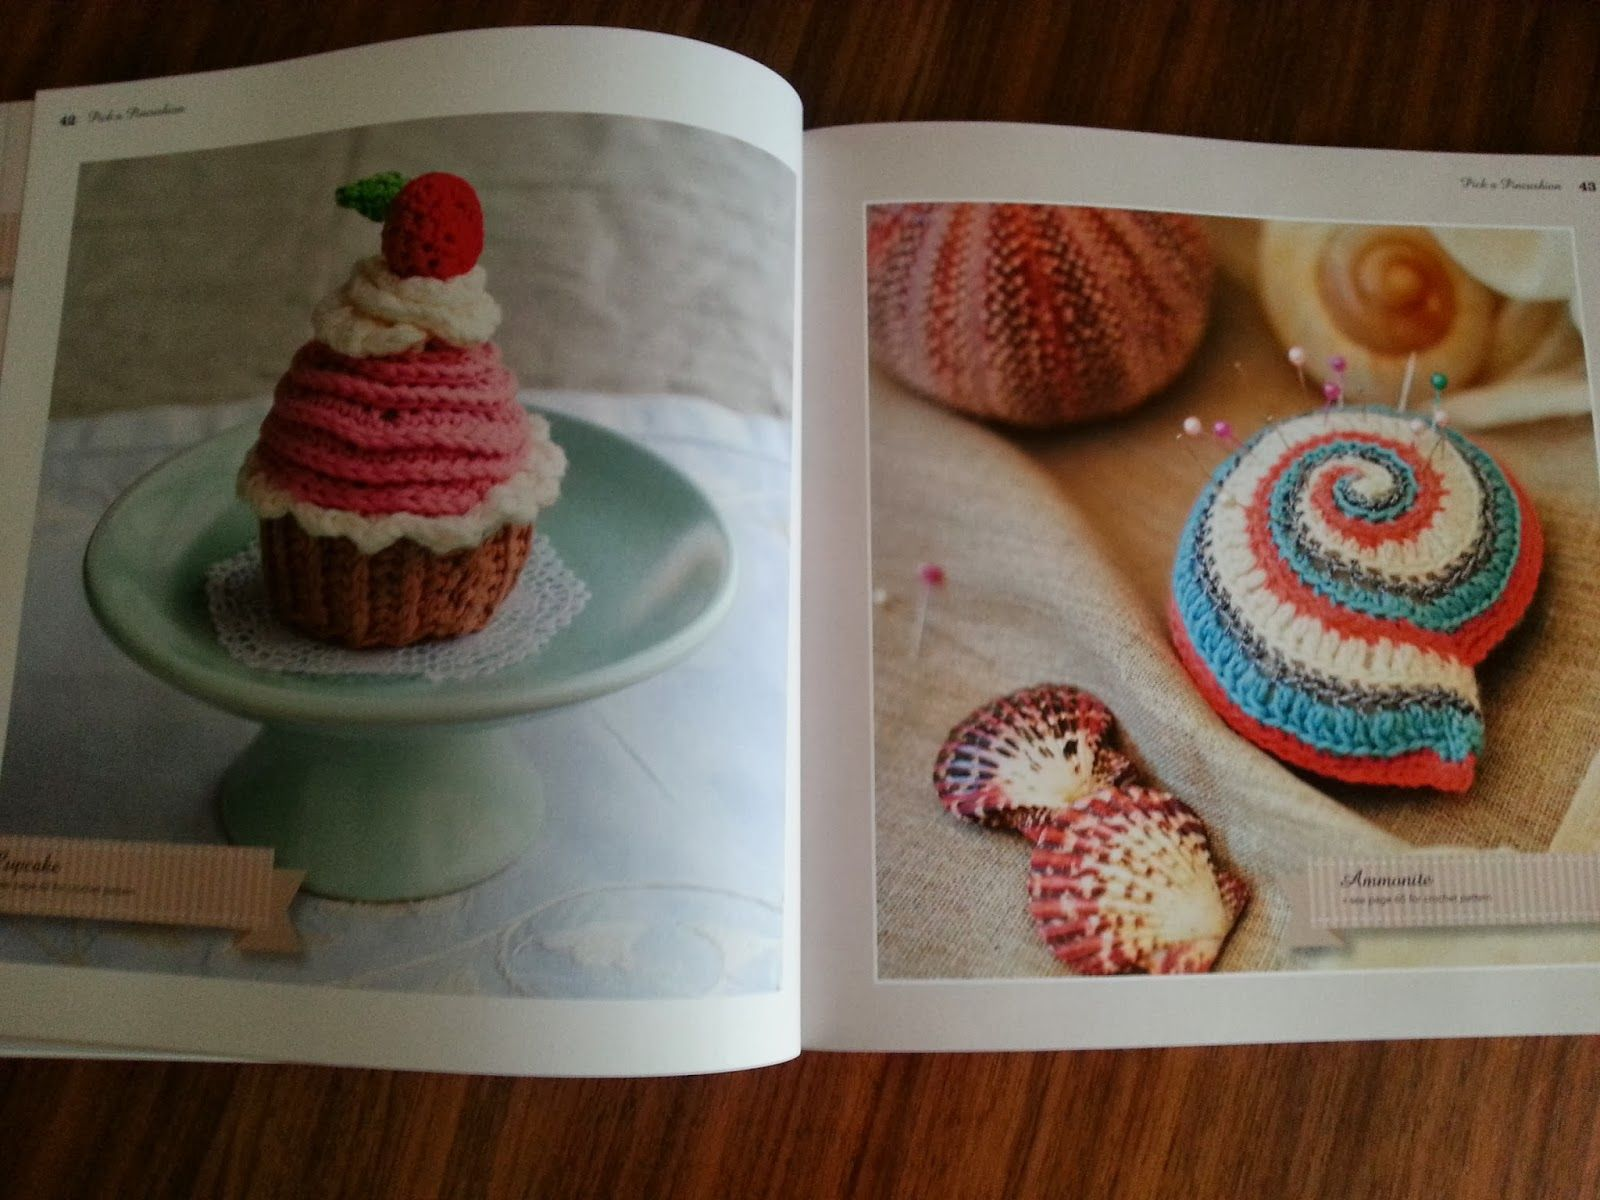 50 Pincushions to Knit & Crochet ~ Book Review ~ Crochet Addict UK ~ Come & check out my #book #review ~ 50 #Pincushions to #knit & #crochet http://www.crochetaddictuk.com/2014/01/50-pincushions-to-knit-crochet-book.html